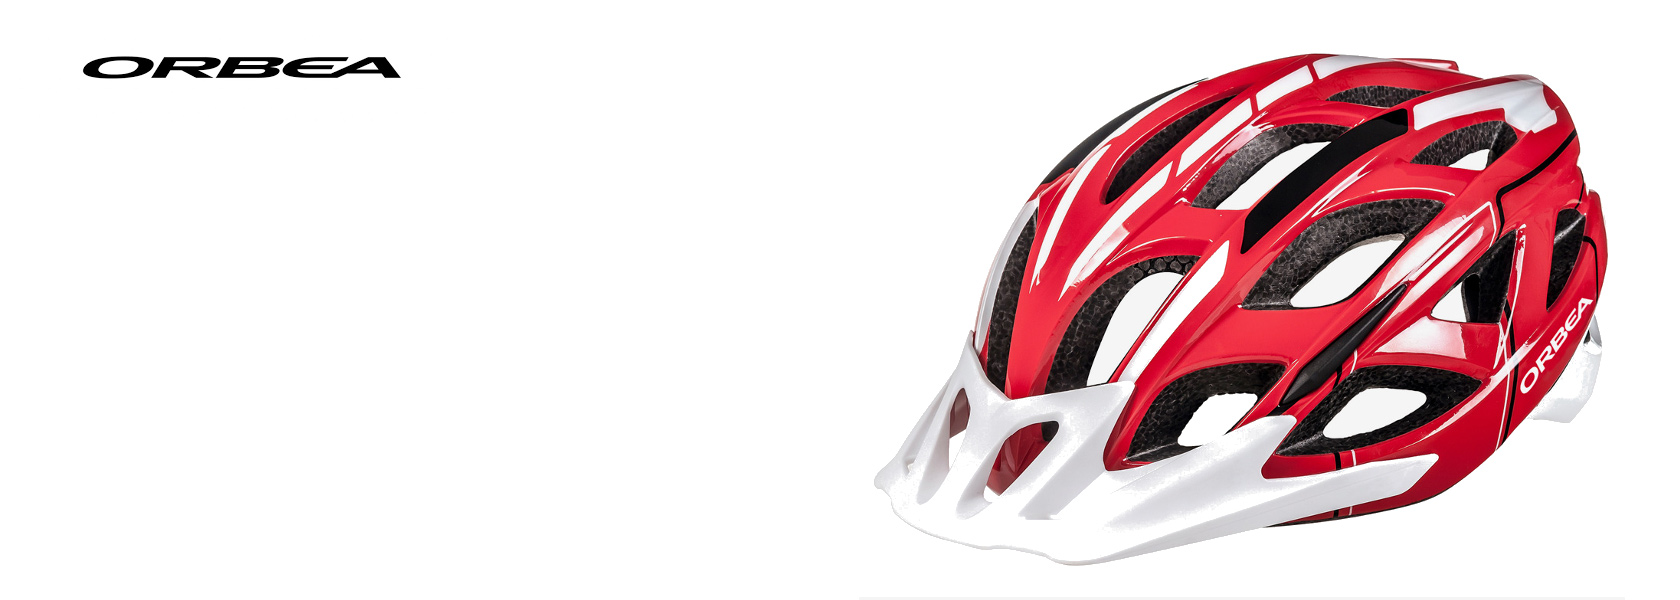 Orbea helmets for rent torrevieja